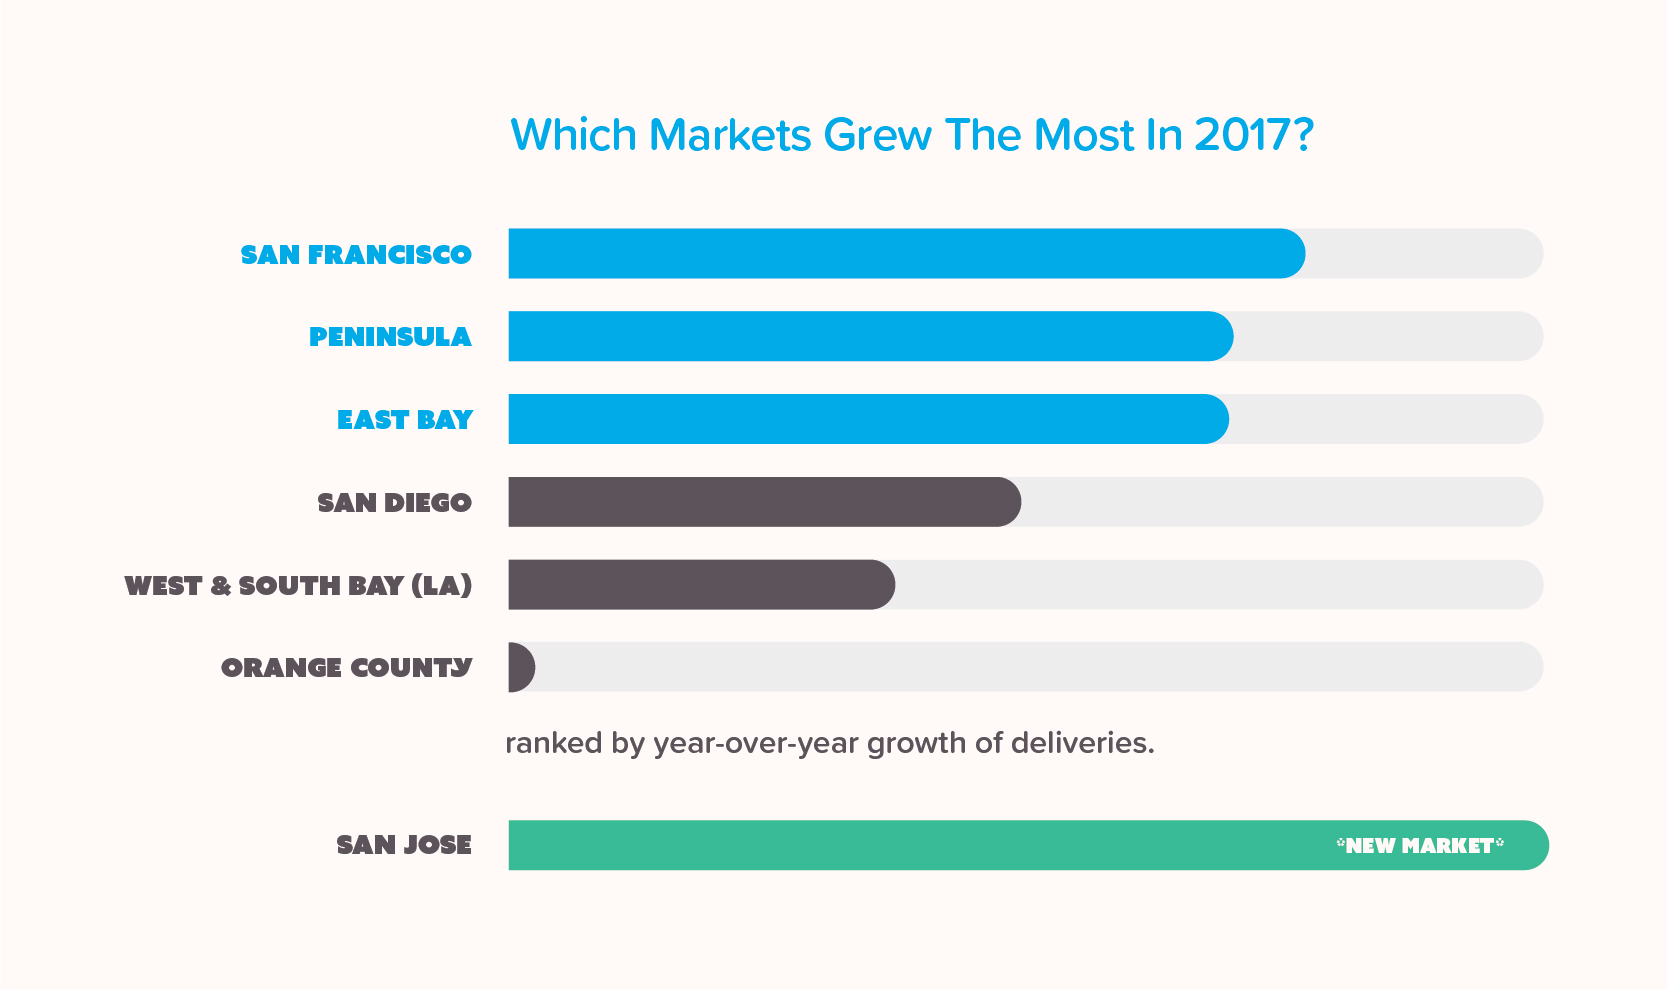 Infographic showing which markets in California grew the most in 2017 for marijuana sales